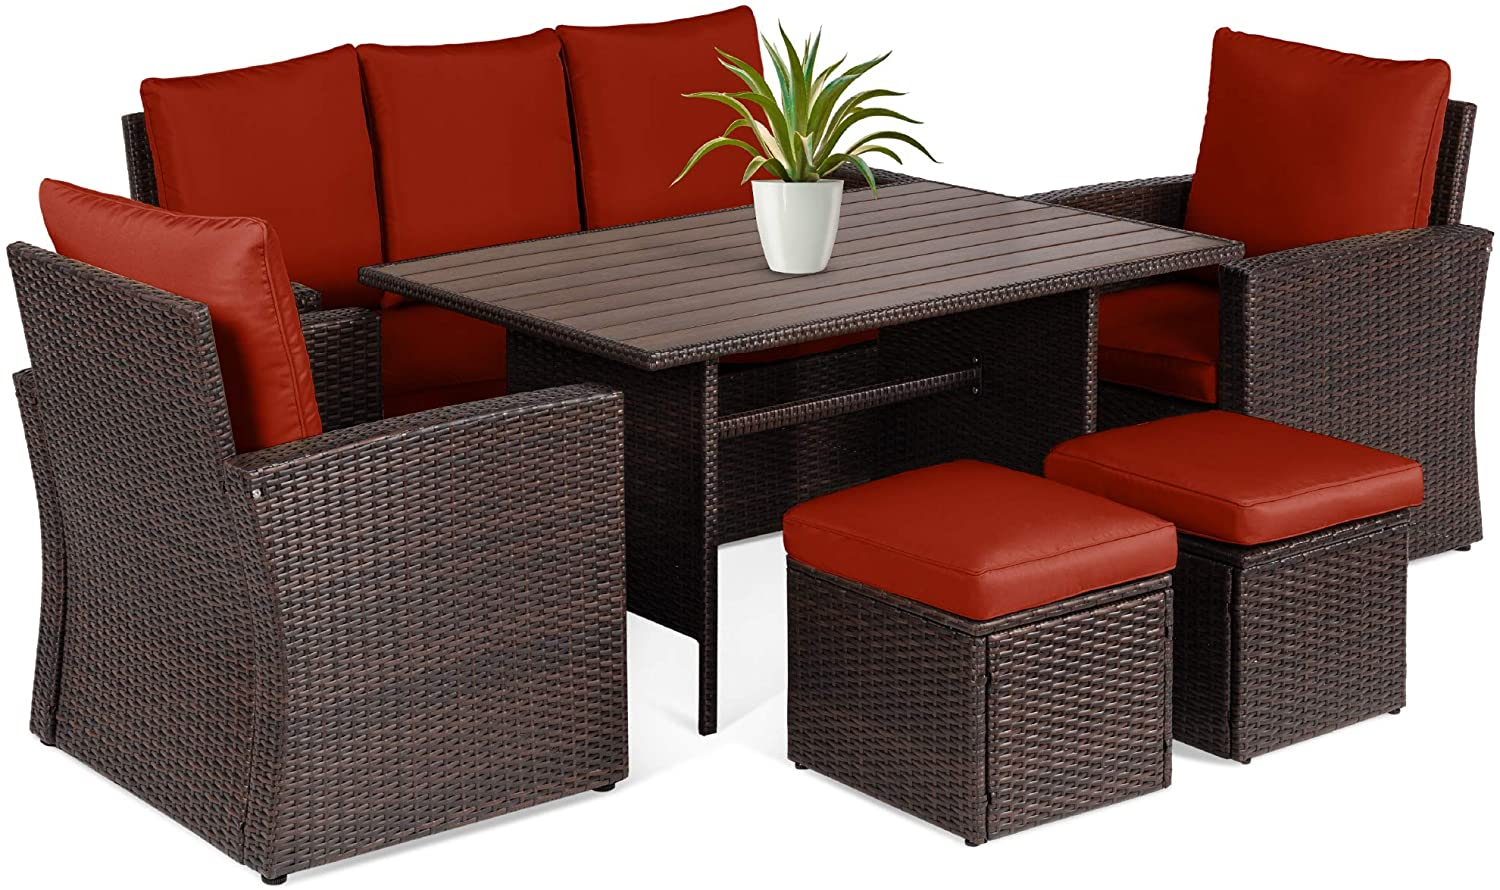 Best Choice Products 7-Seater Conversational Wicker Sofa Dining Table, Outdoor Patio Furniture Set w/Modular 6 Pieces, Cushions, Protective Cover Included - Brown/Red